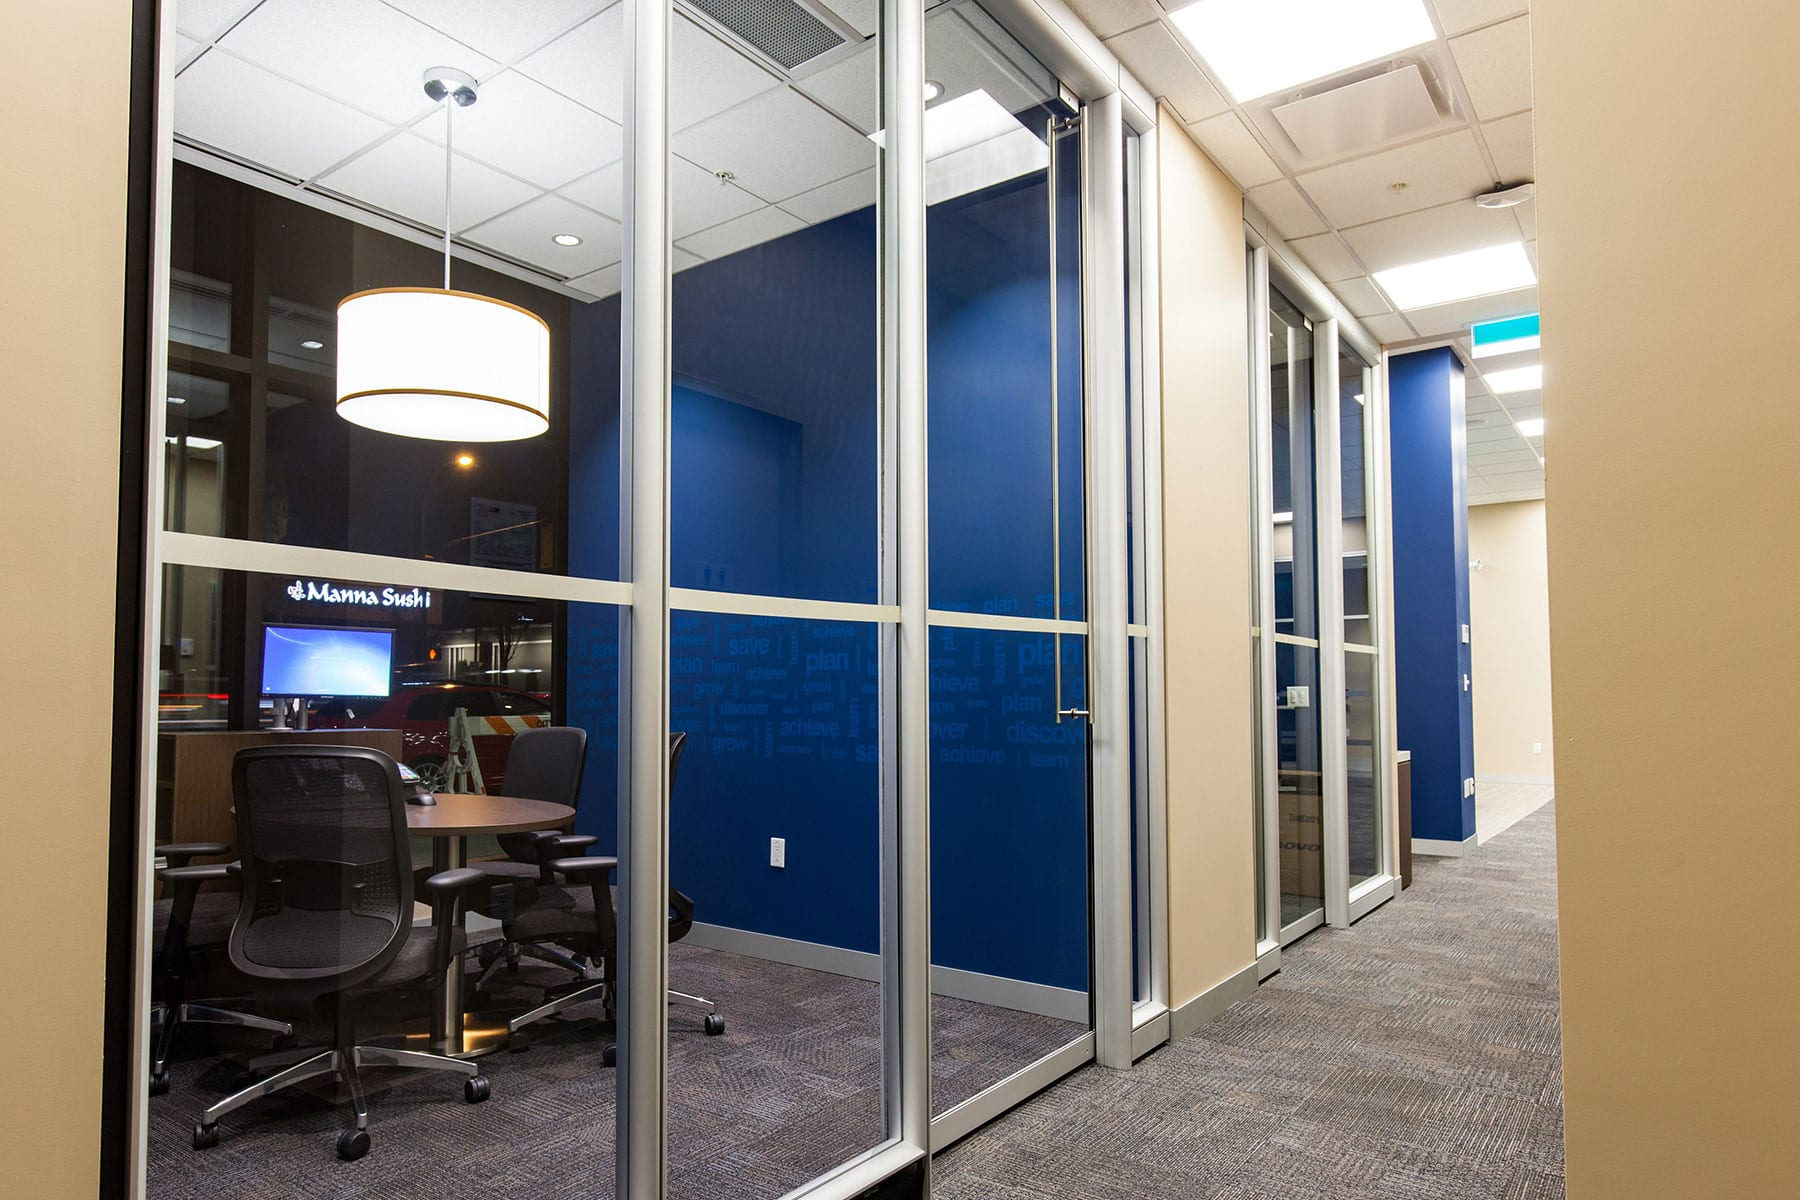 General Contracting for RBC Royal Bank, full fit-out with new finishes, partitions, ceilings and includes private meeting rooms